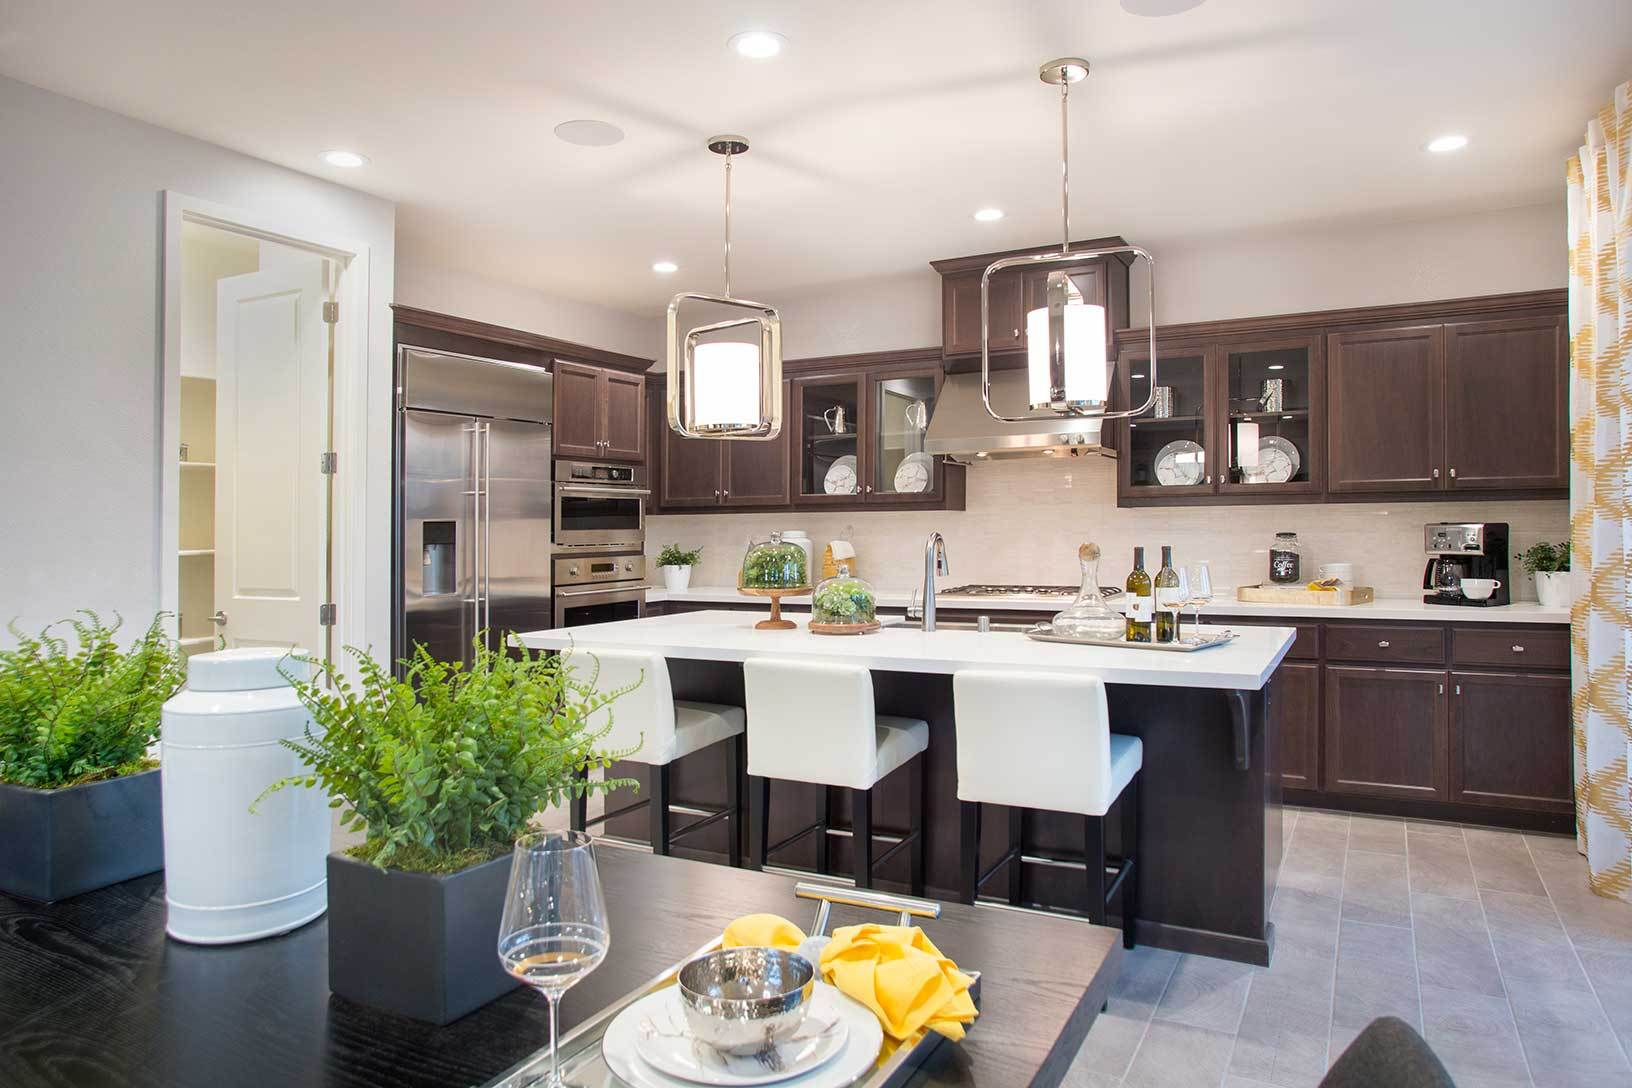 Kitchen-in-Residence 3-at-Harvest at Green Valley-in-Fairfield